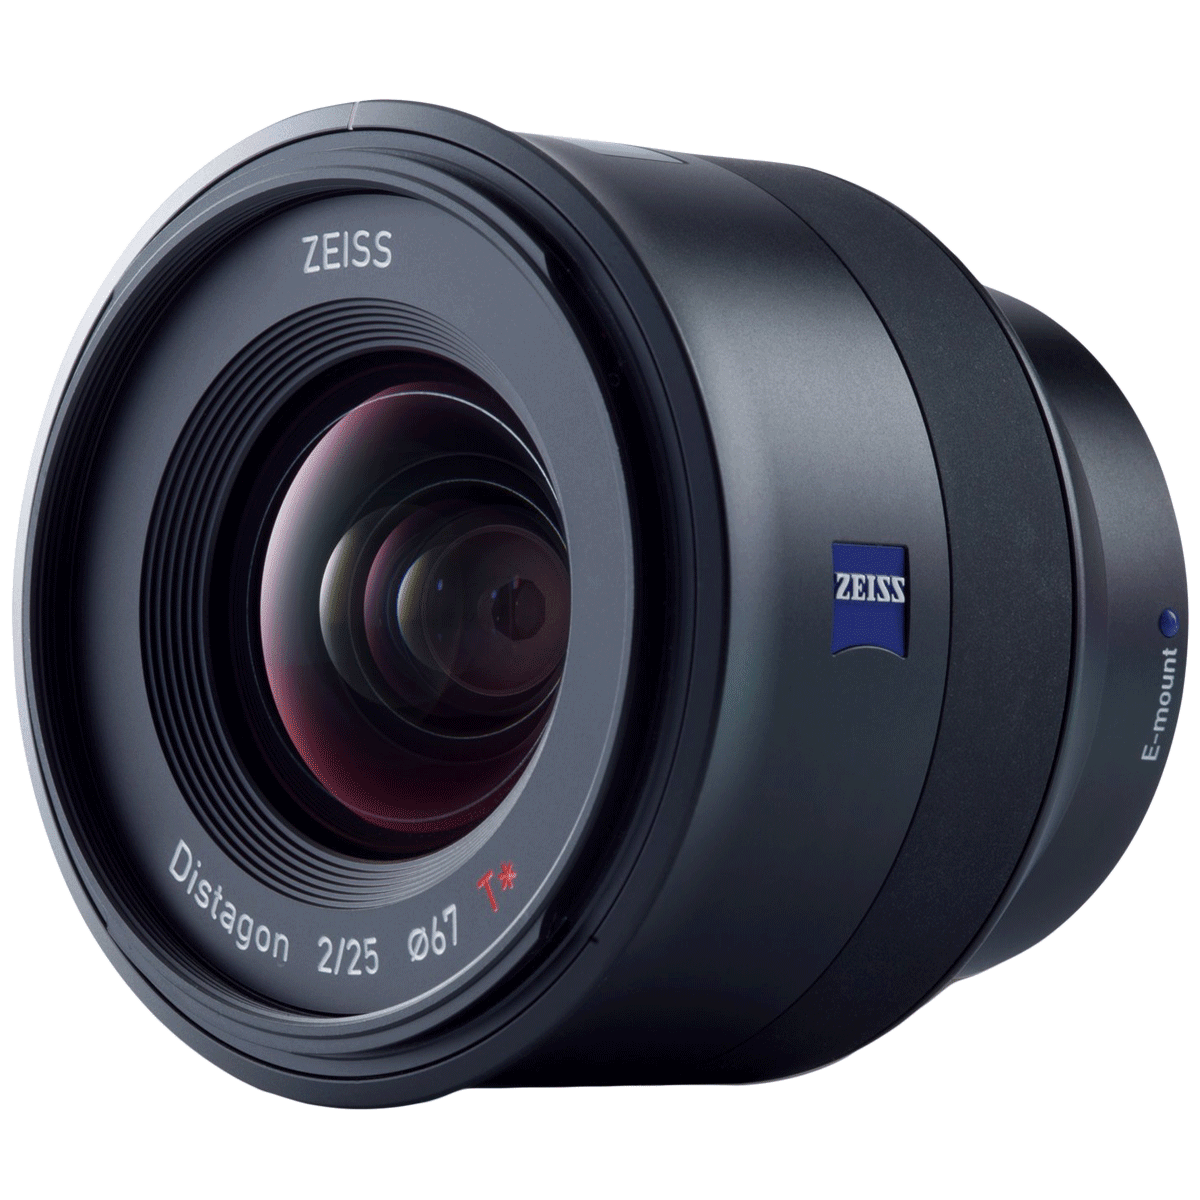 Carl Zeiss Batis 25 mm f/2.0 – f/22 Wide Angle Lens for Sony E-Mount Mirrorless and Full Frame Cameras (Weather and Dust Sealing, 000000-2103-750, Black)